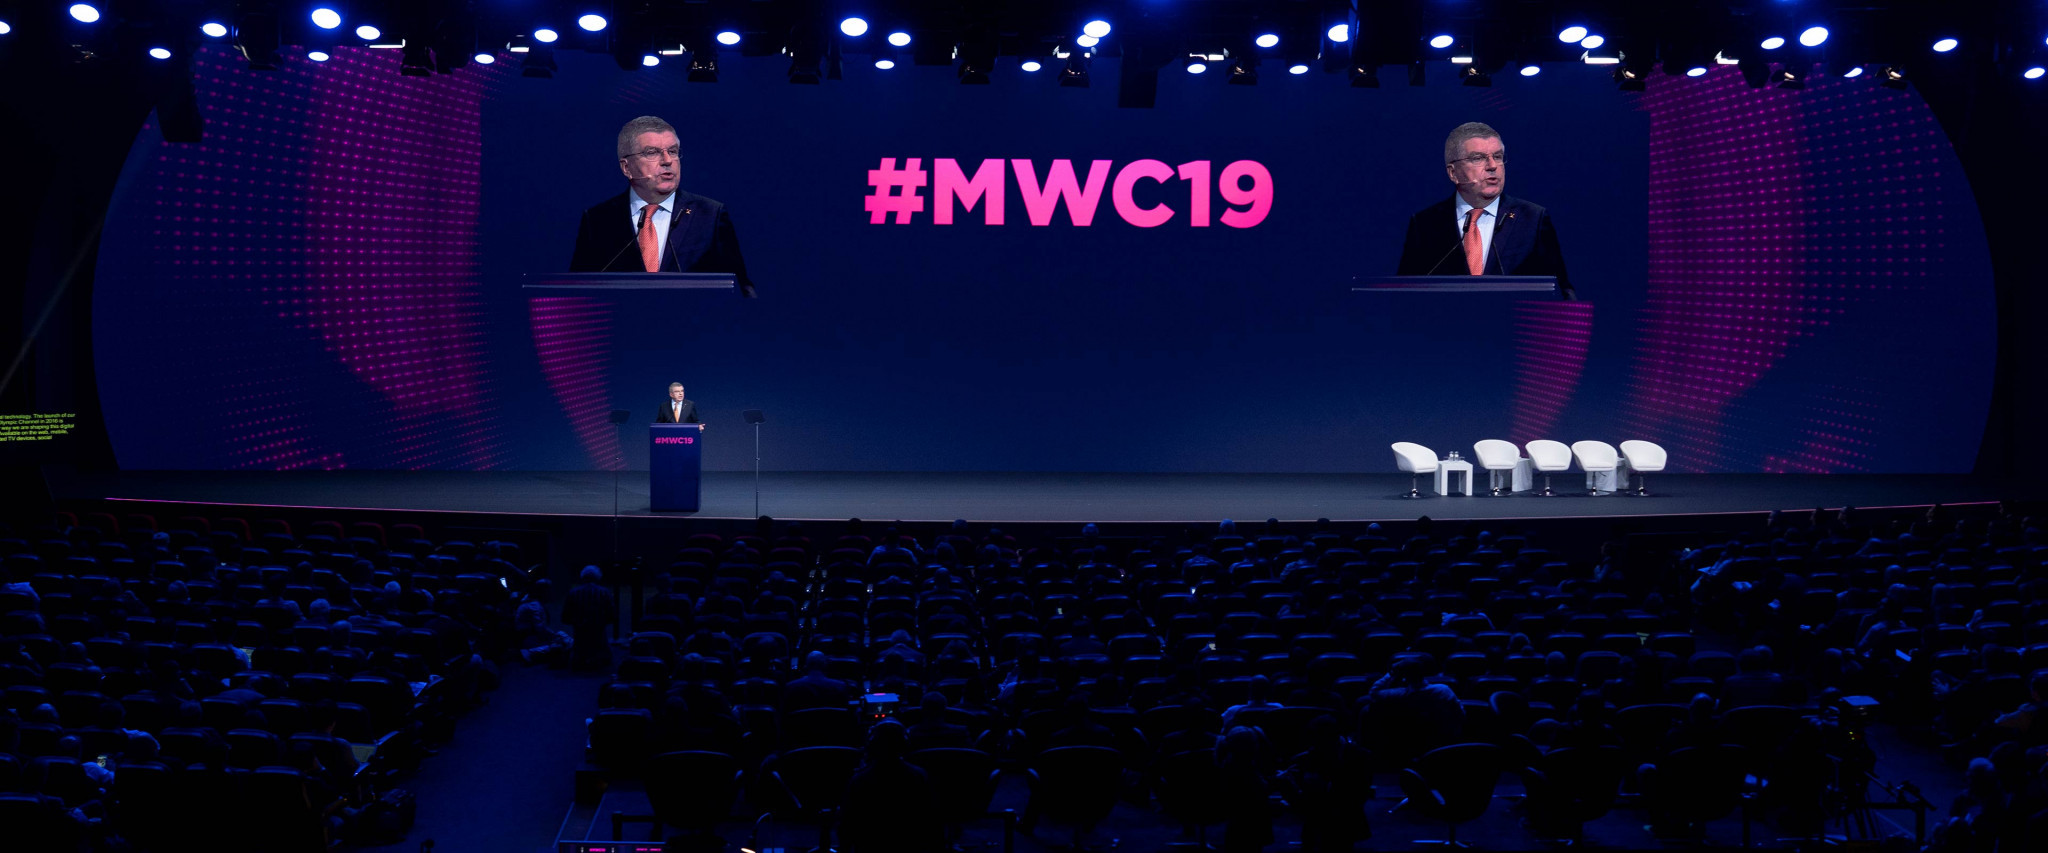 IOC President Bach discusses importance of 5G technology to Olympic future